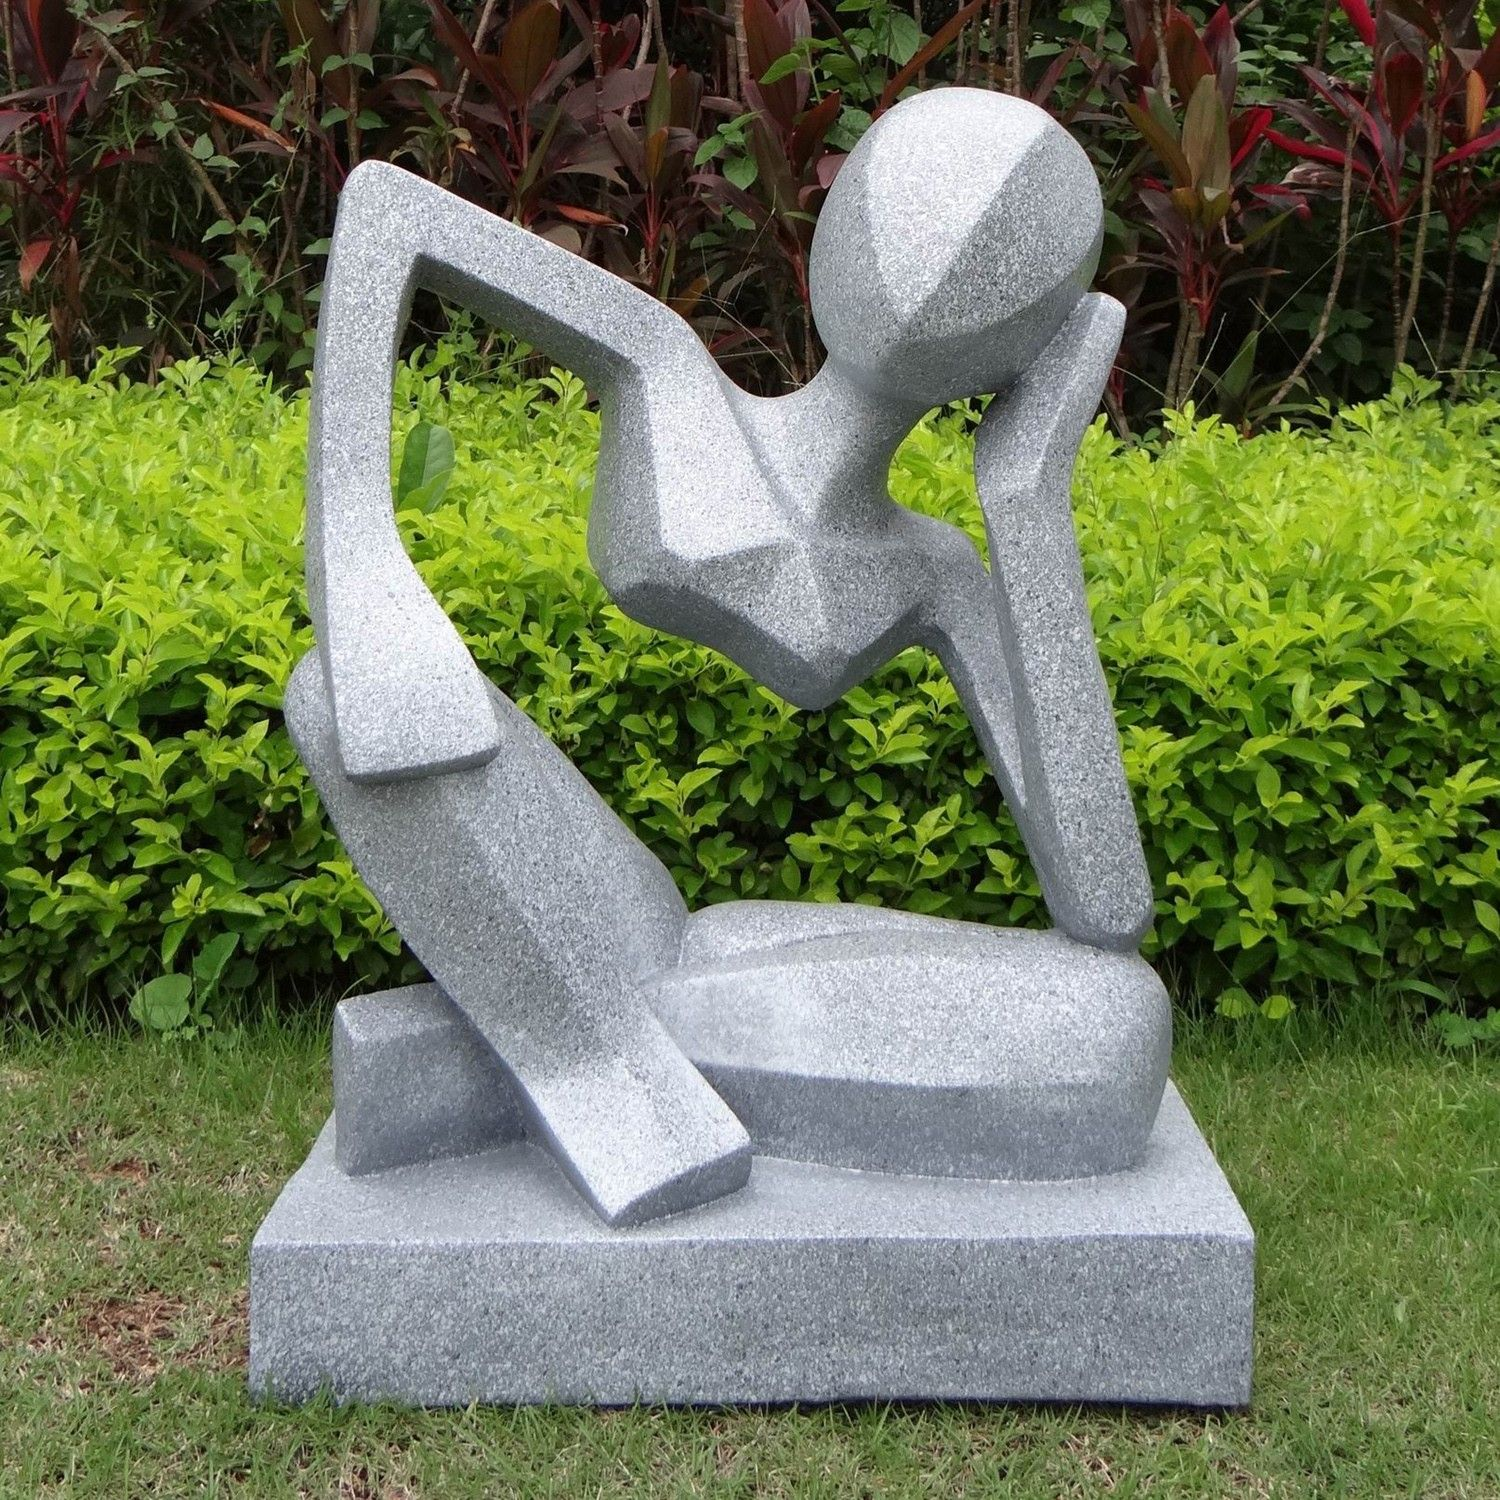 contemporary garden art large garden sculptures. Black Bedroom Furniture Sets. Home Design Ideas